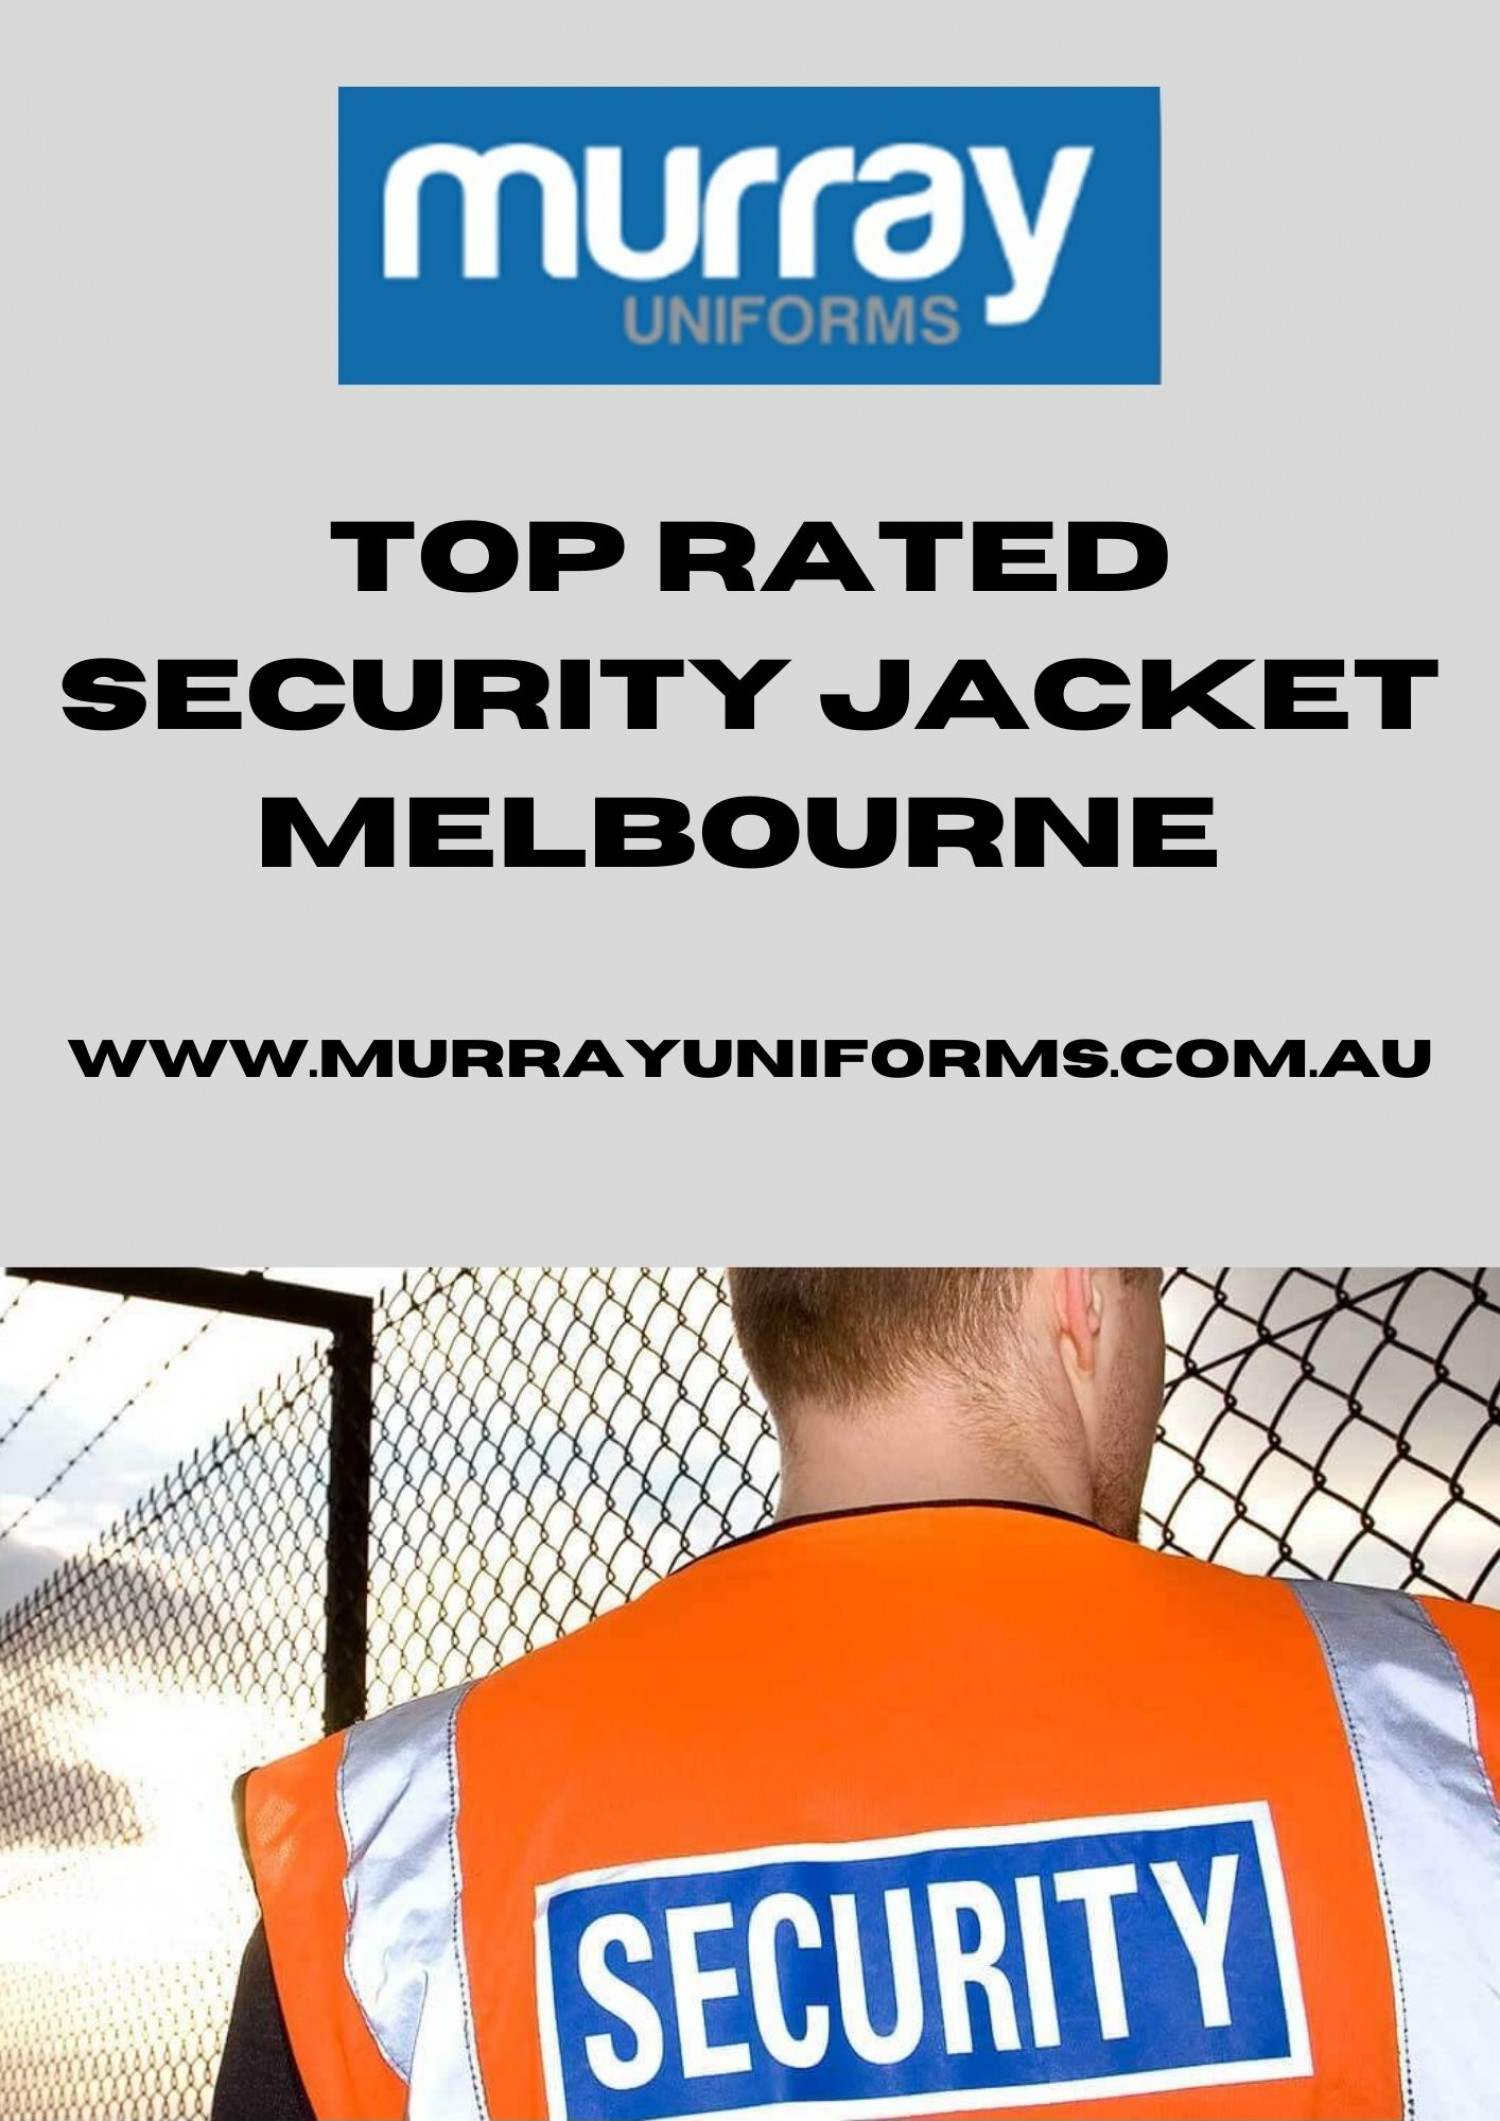 Top Rated Security Jacket Melbourne -  www.murrayuniforms.com.au Infographic